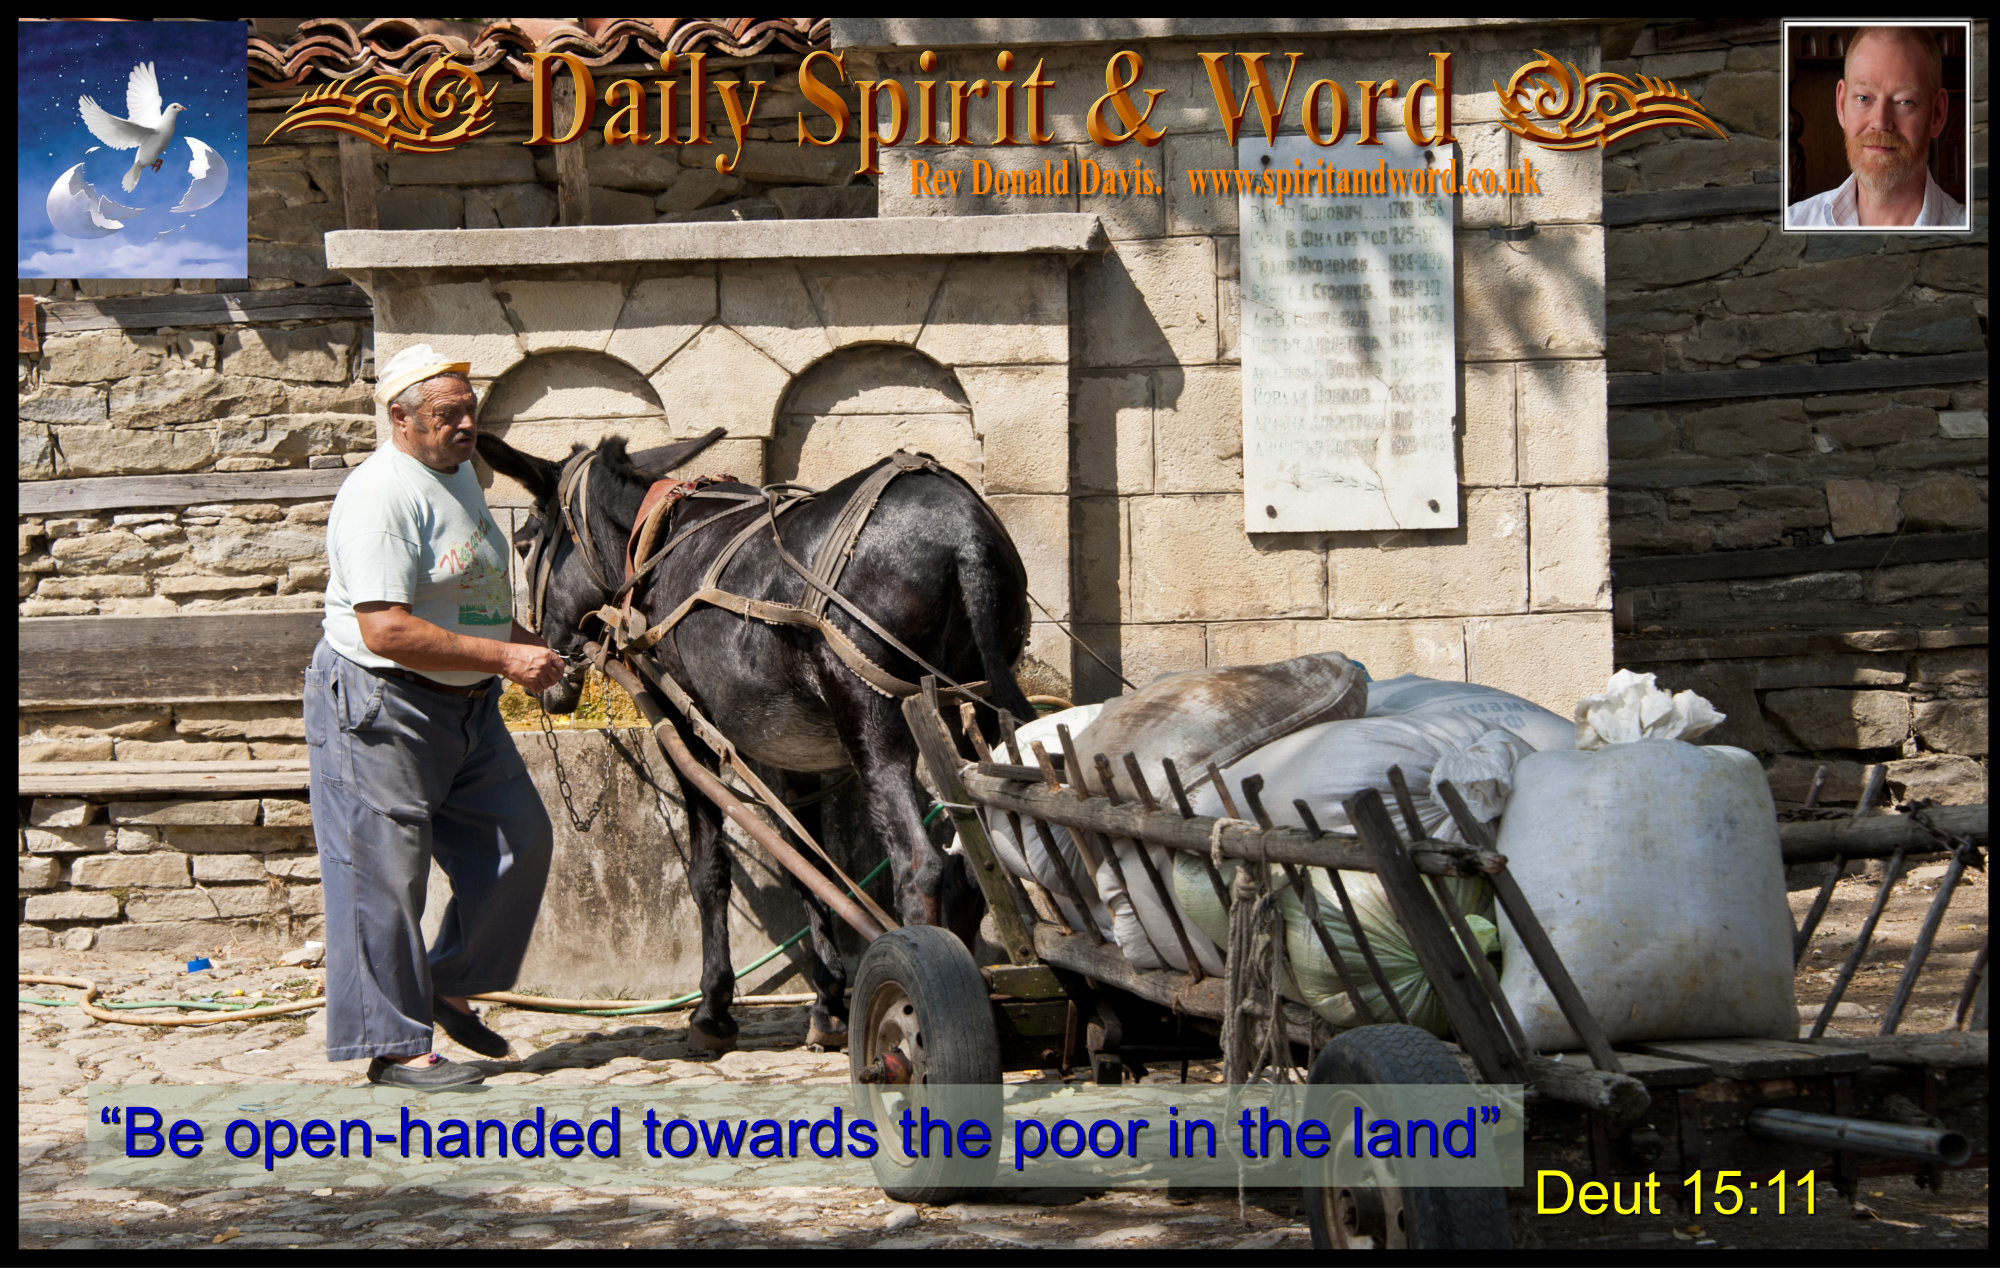 Be Open-Handed and Open-Hearted Towards The Poor.